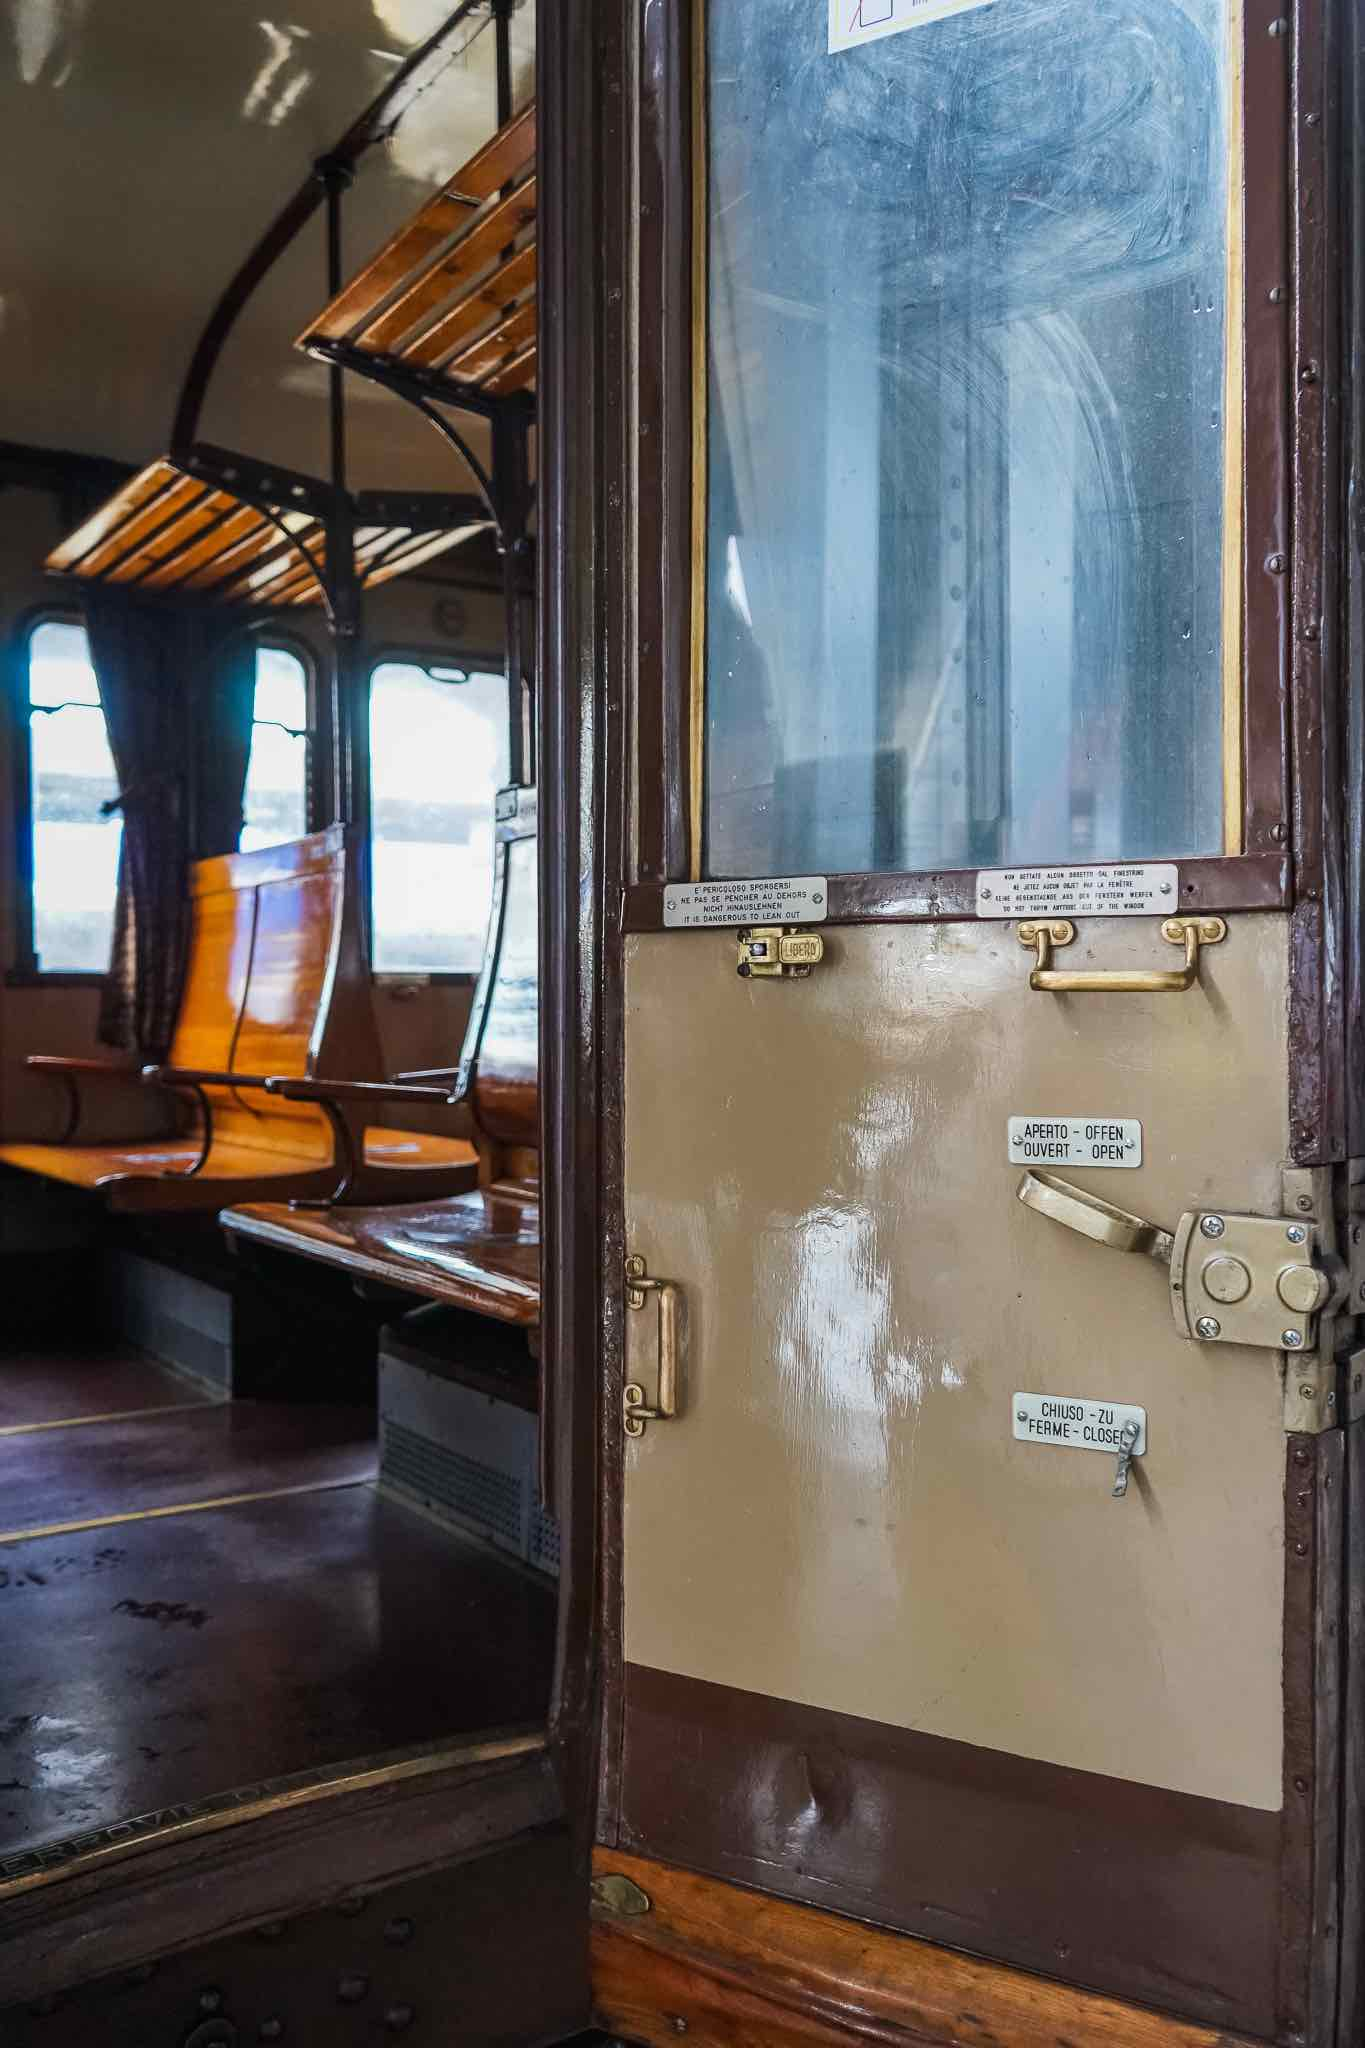 A vintage carriage of the Italian Trans-Siberian railway